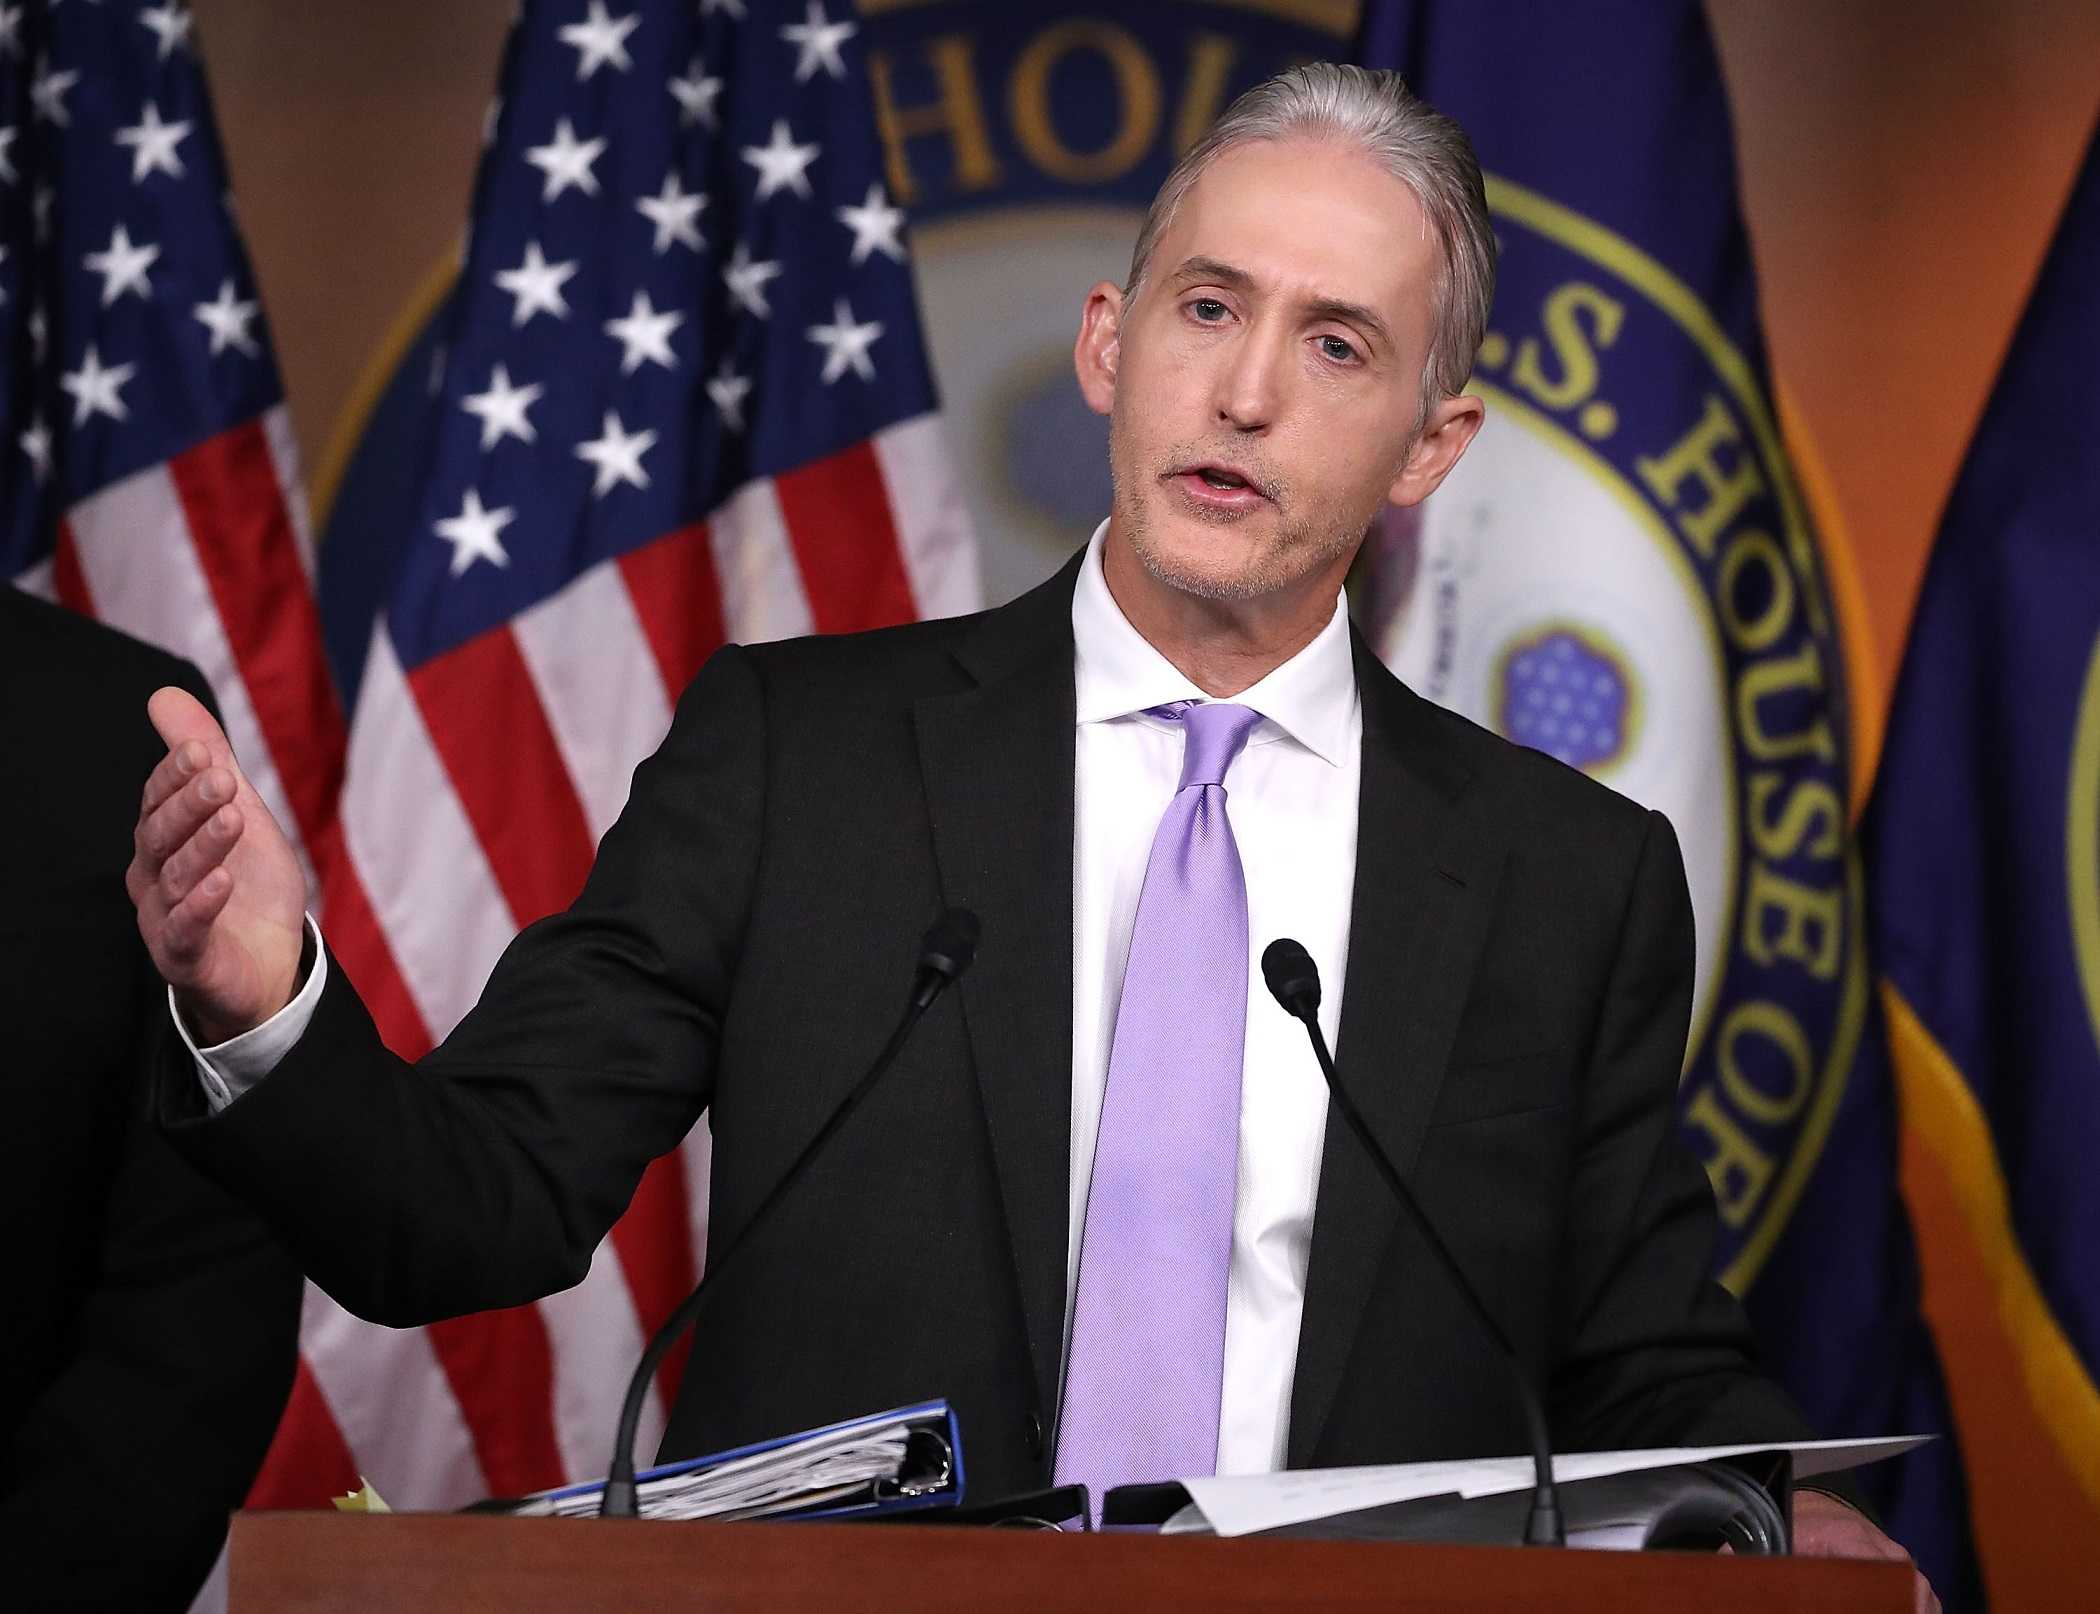 Rep. Trey Gowdy Says He Will Not Seek Re-election